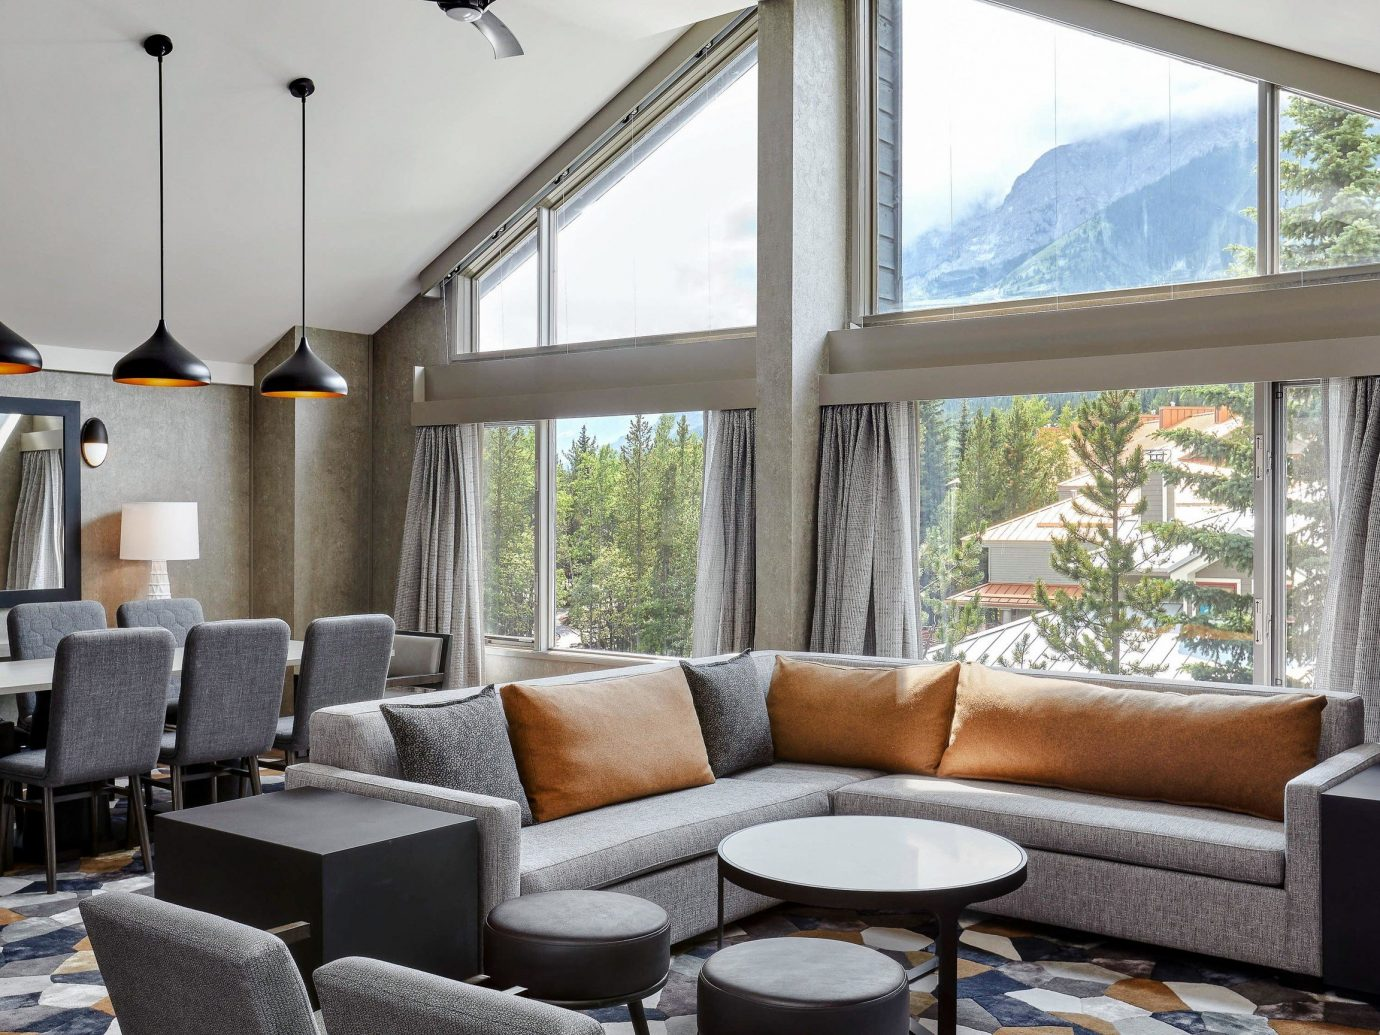 Alberta Boutique Hotels Canada Hotels Road Trips window indoor Living room sofa floor living room interior design furniture real estate house ceiling window treatment interior designer daylighting area decorated leather